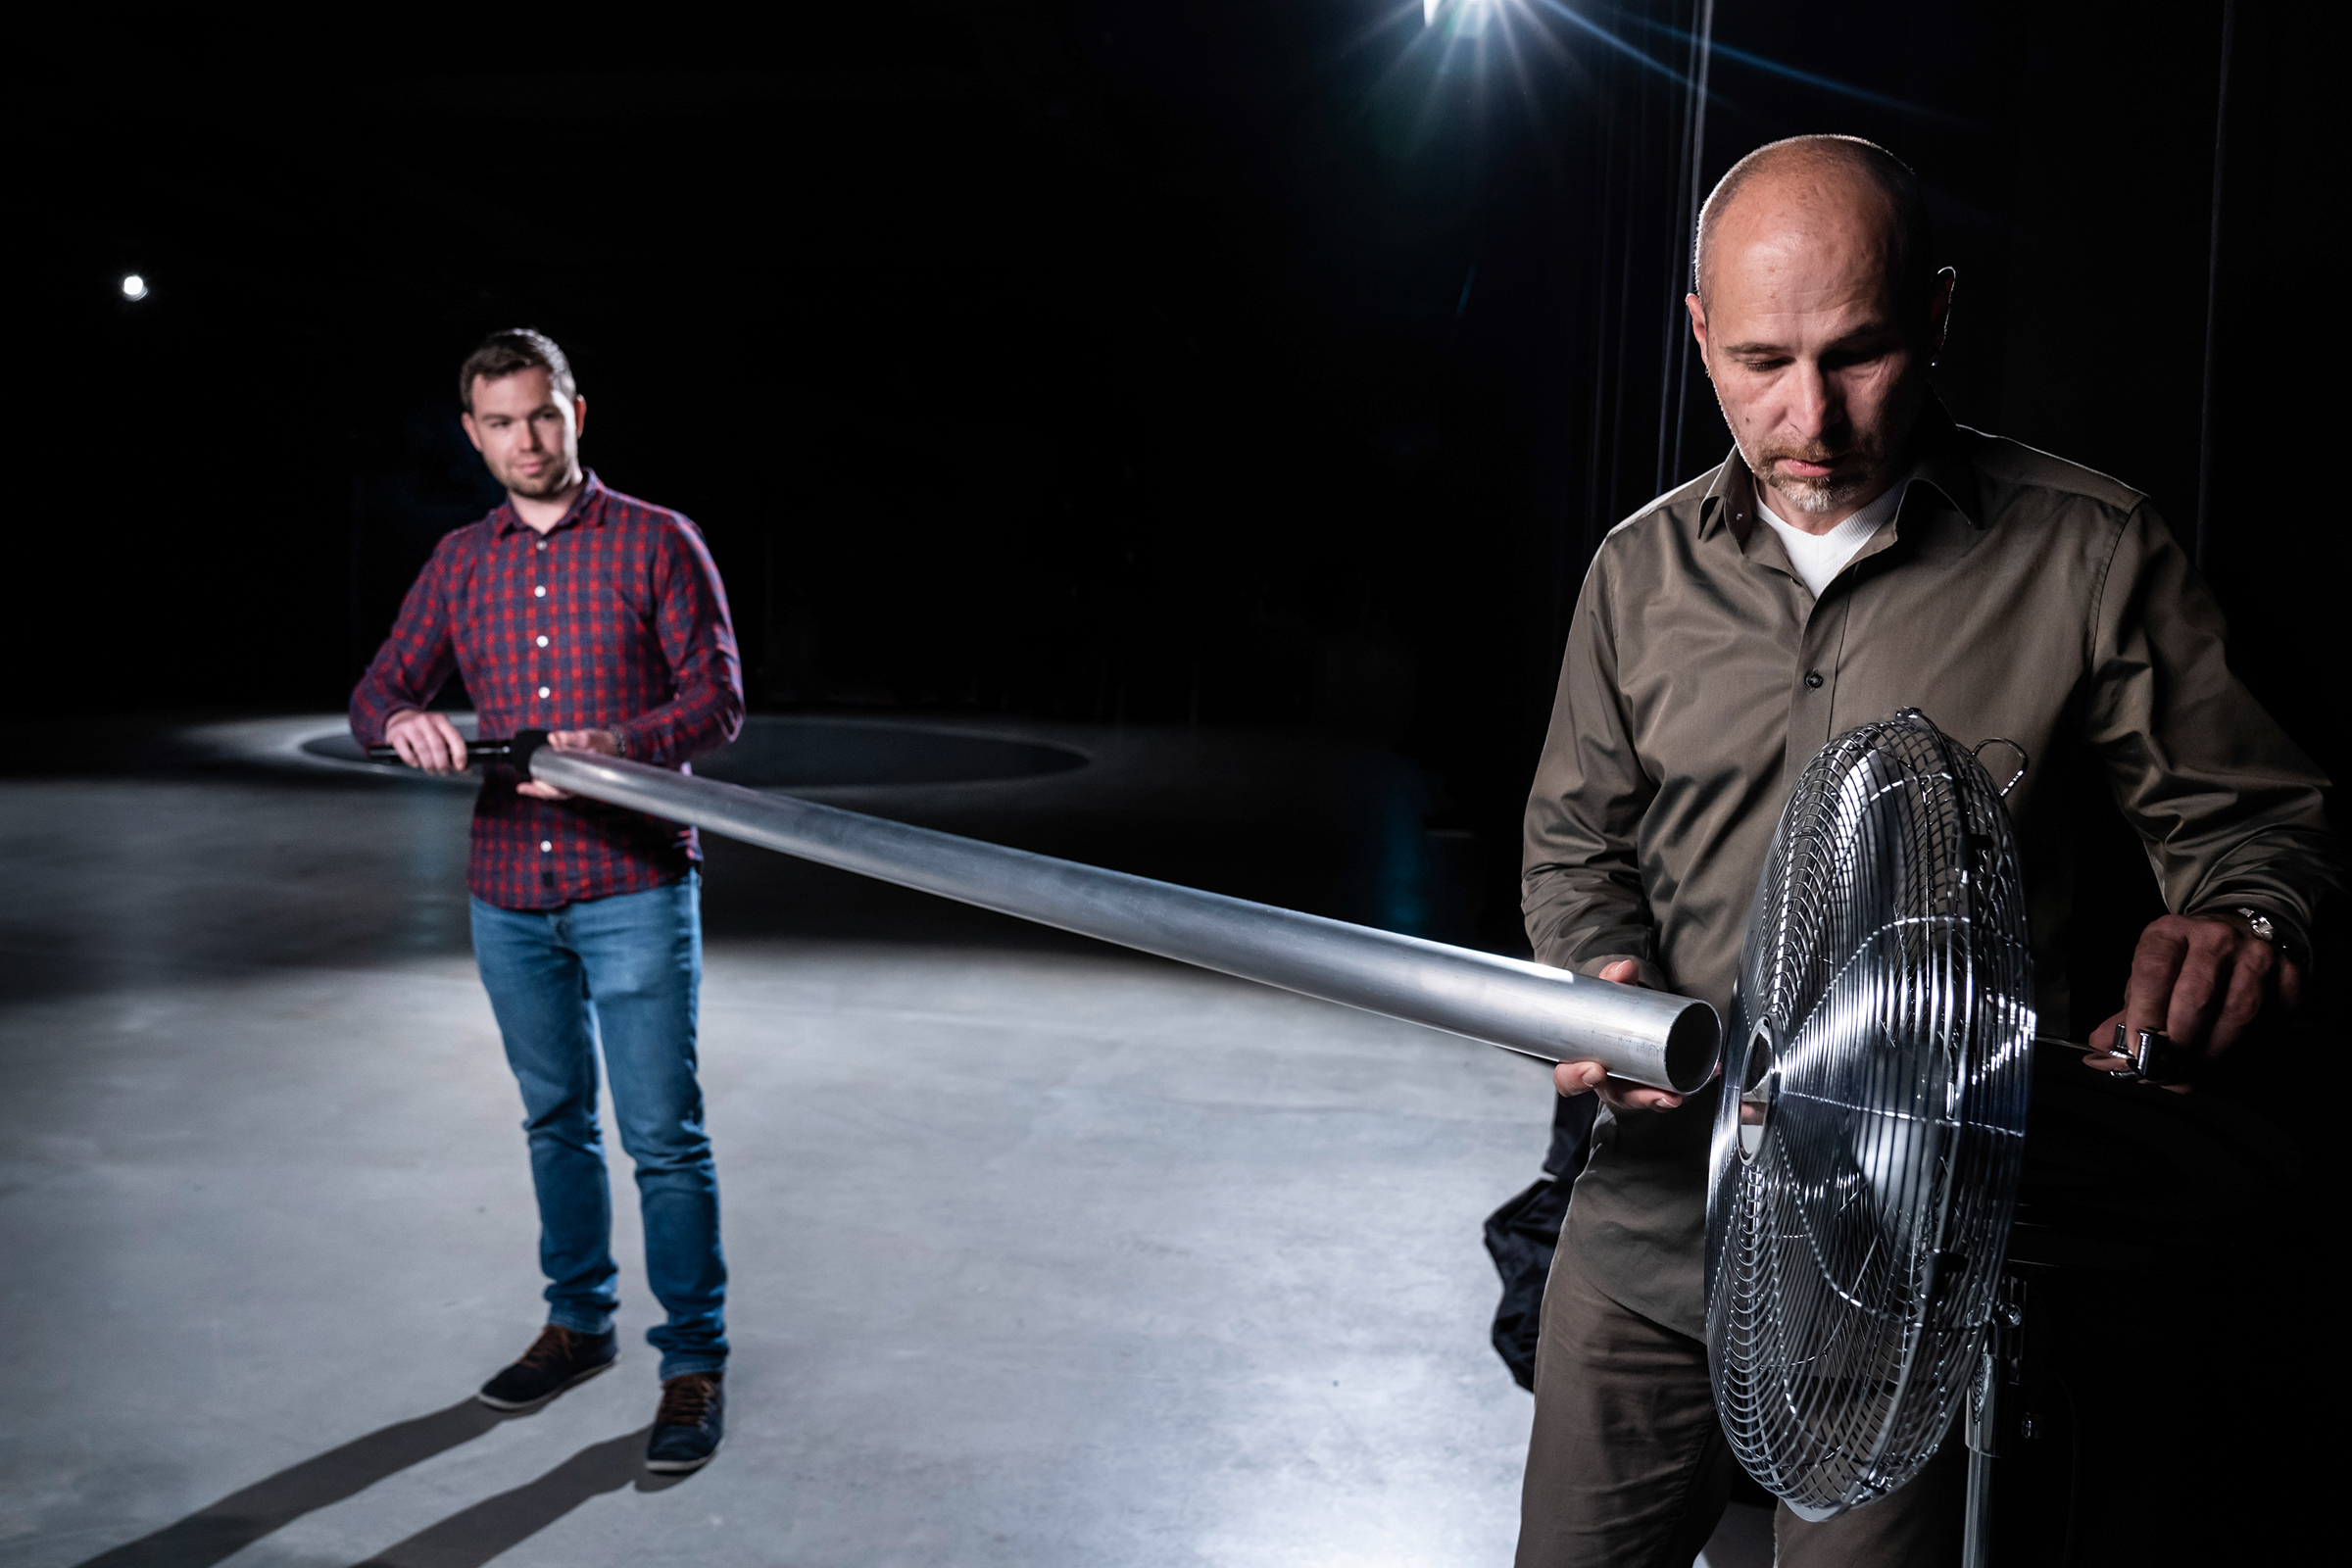 Audi sound engineers Stephan Gsell and Rudolf Halbmeir experiment with sound-production techniques